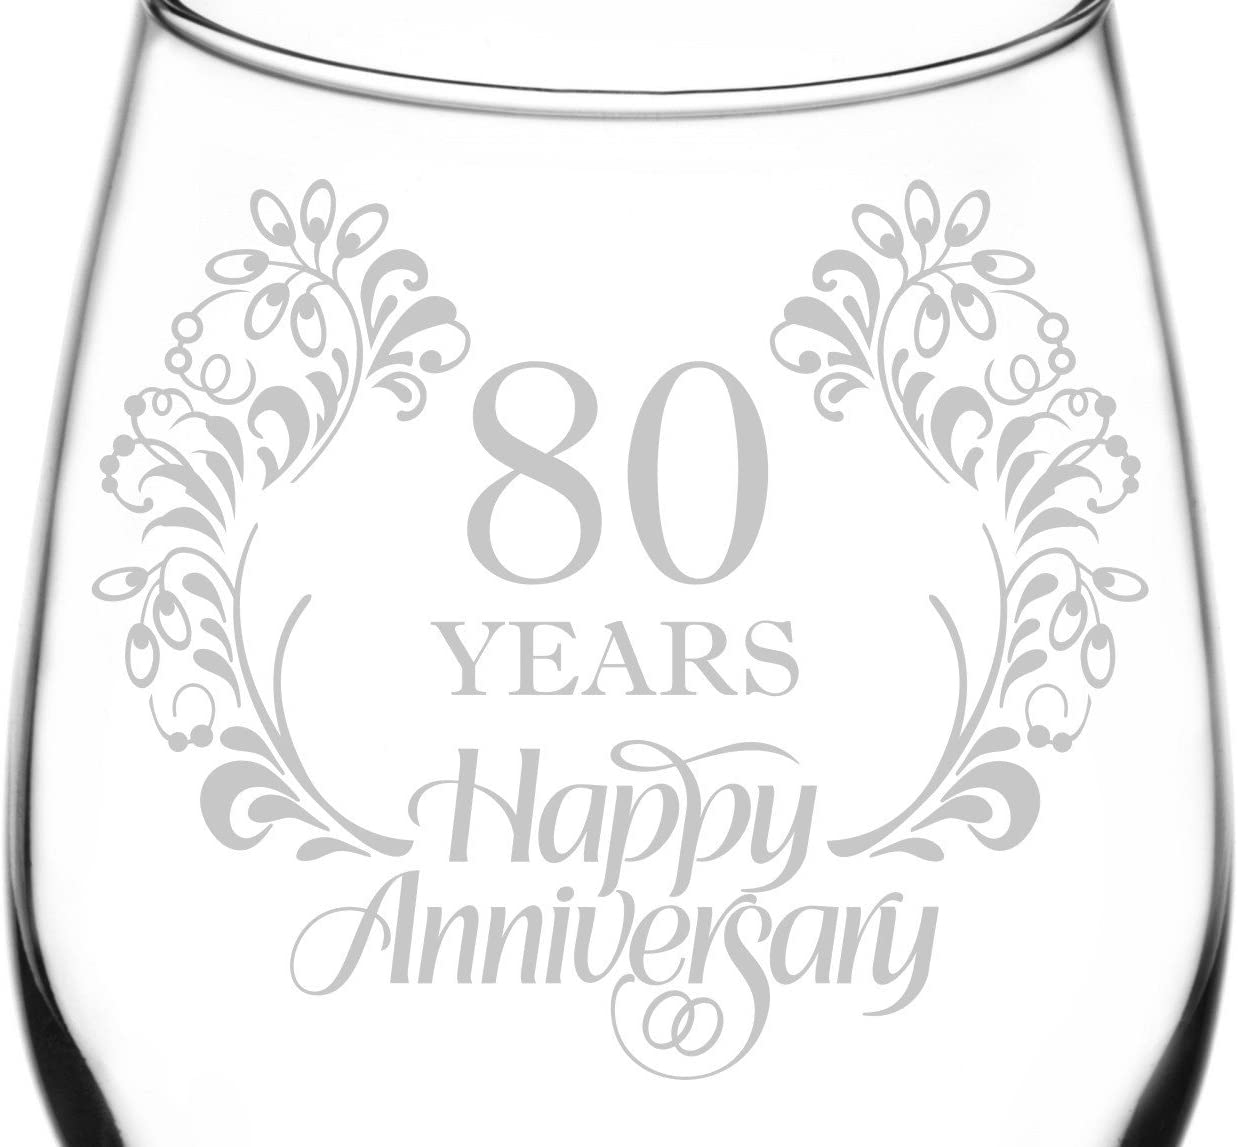 Novelty Present /& Idea Gifts 11 oz Laser Engraved Wine Glass Beautiful /& Elegant Floral Happy Anniversary Wedding Ring Inspired 35th